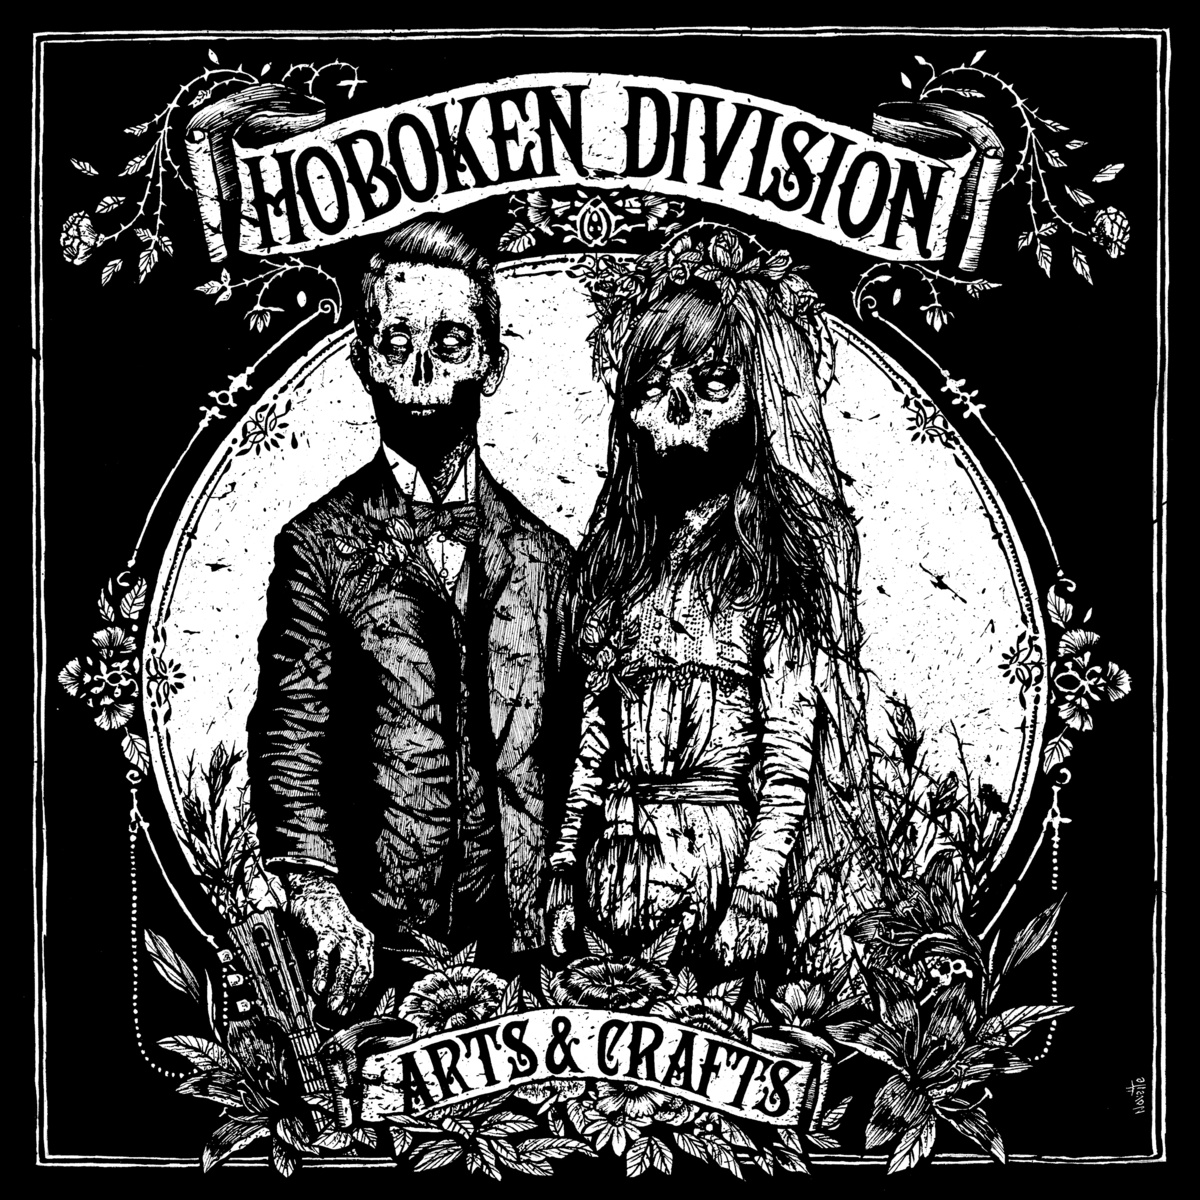 HOBOKEN DIVISION Arts & Crafts LP